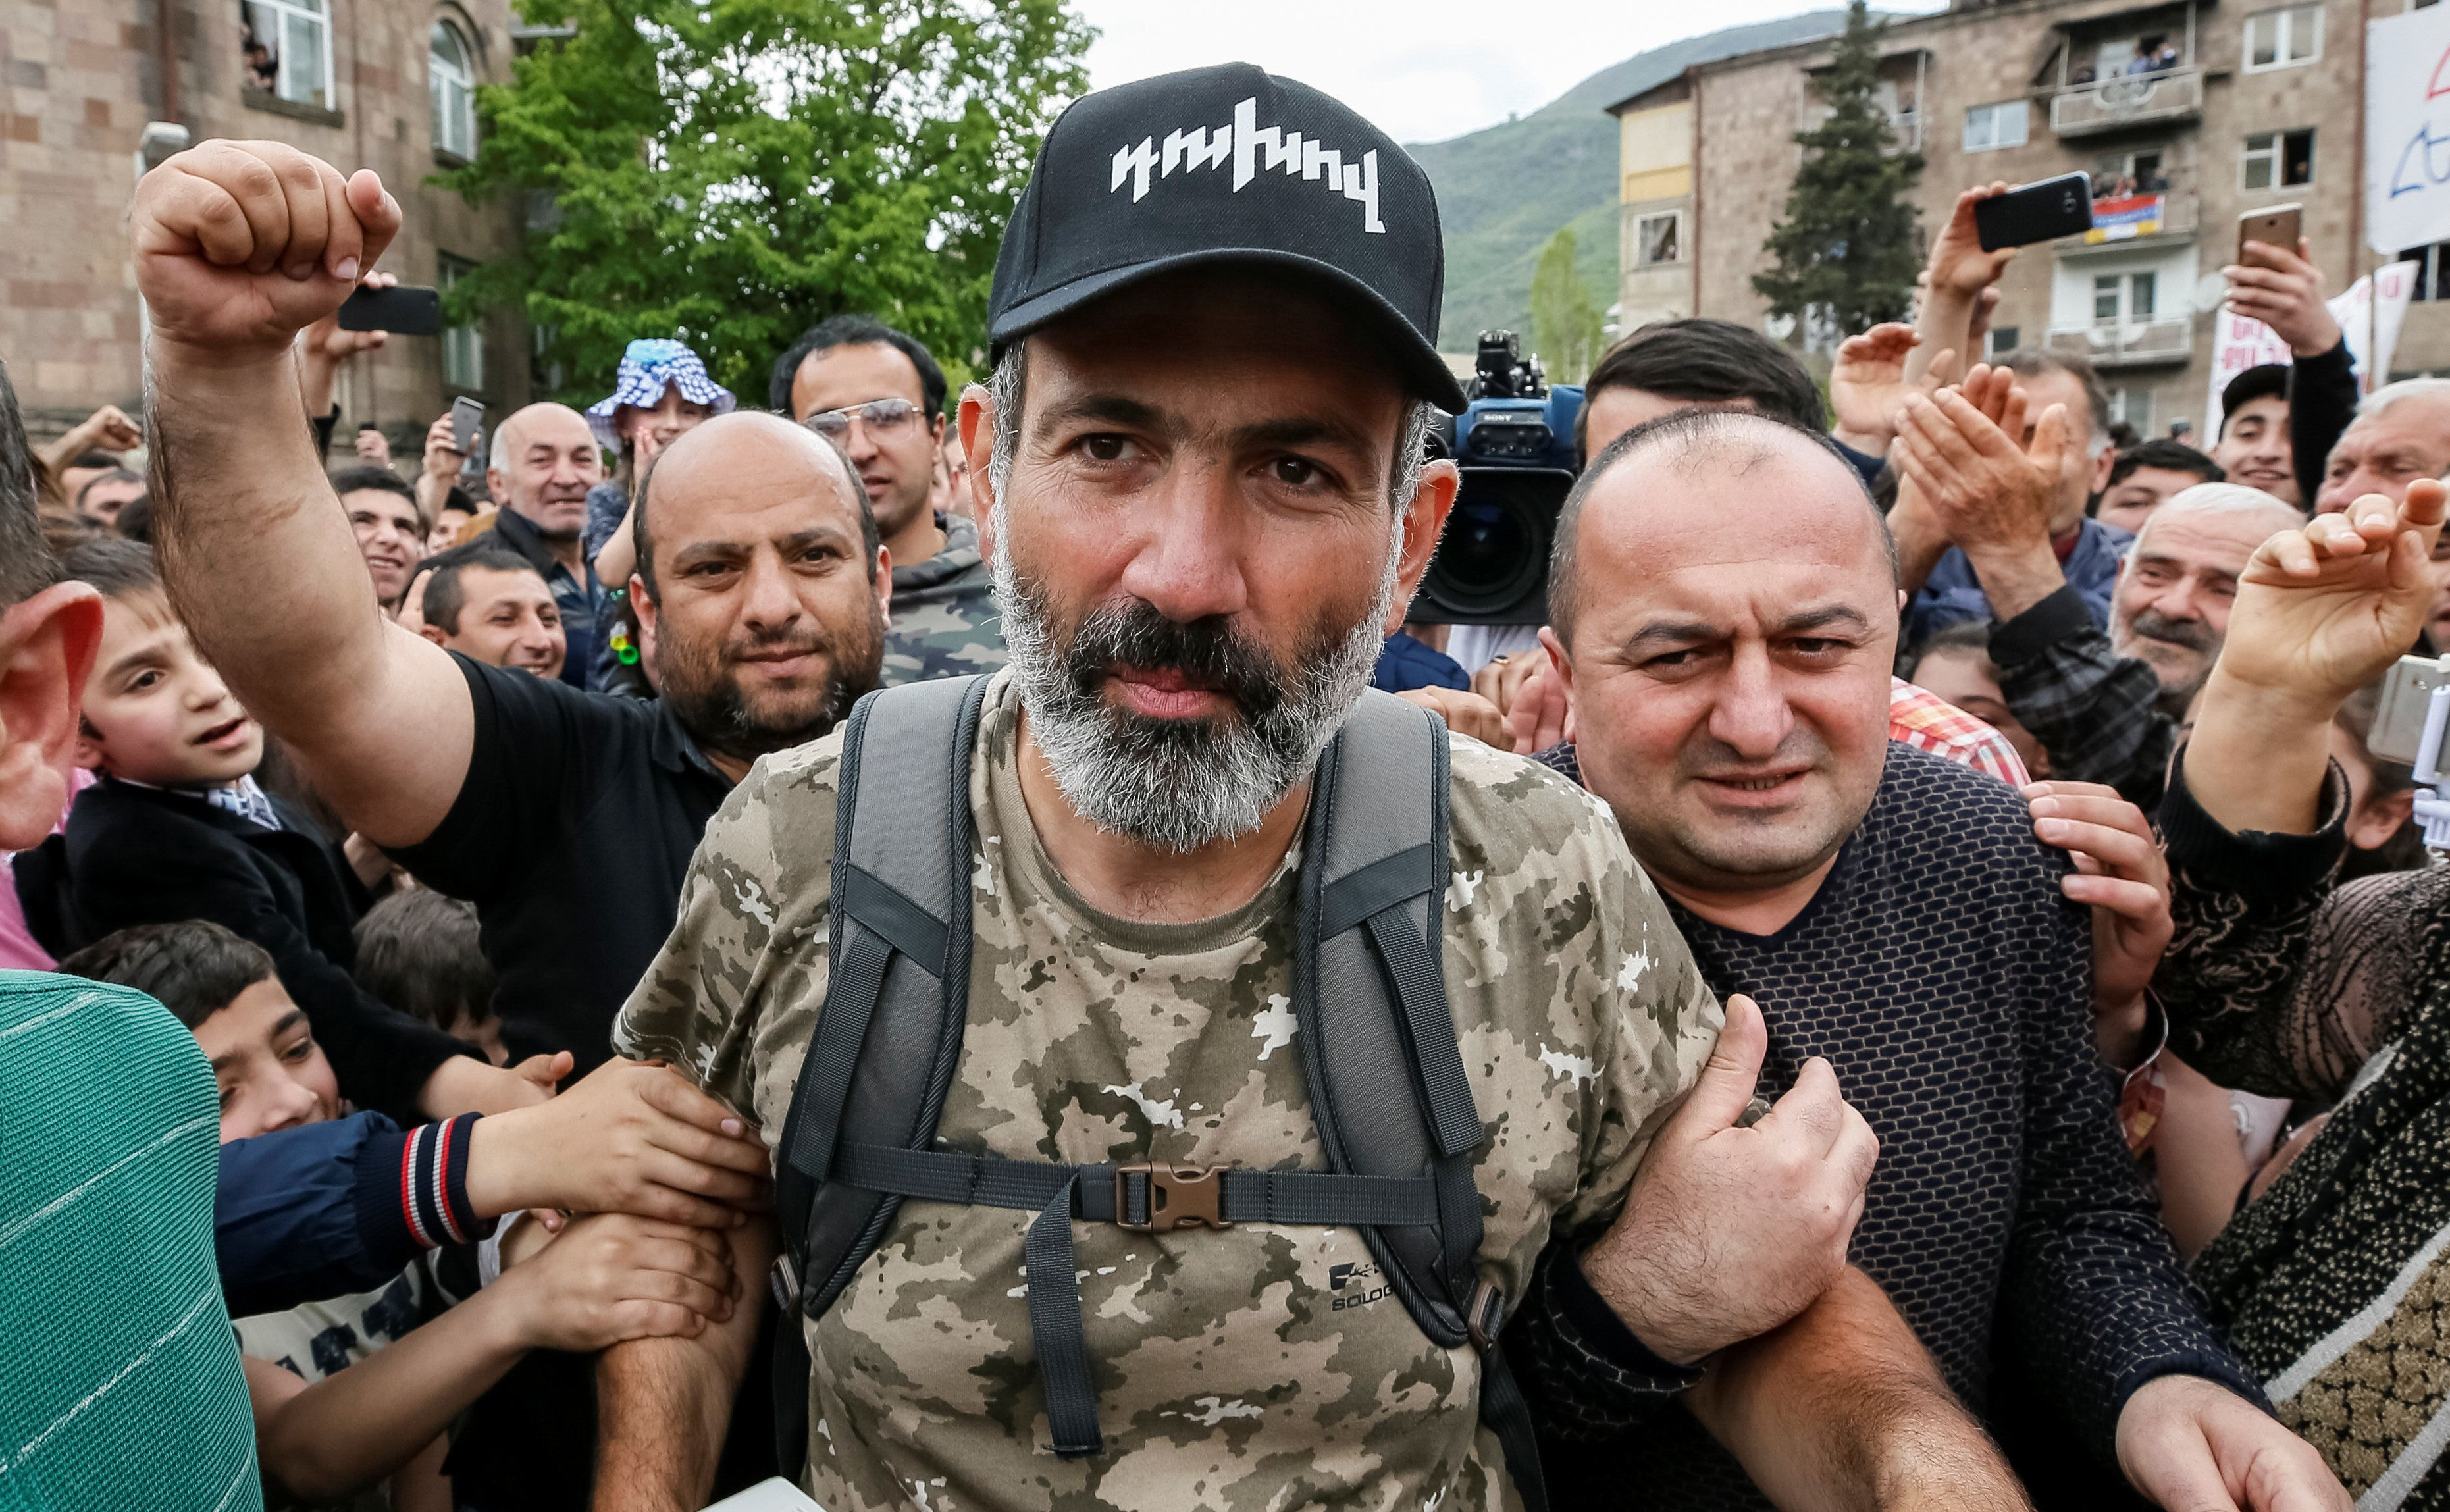 People greet Armenian opposition leader Nikol Pashinyan as he arrives at a rally in the town of Ijevan, Armenia April 28, 2018.  REUTERS/Gleb Garanich